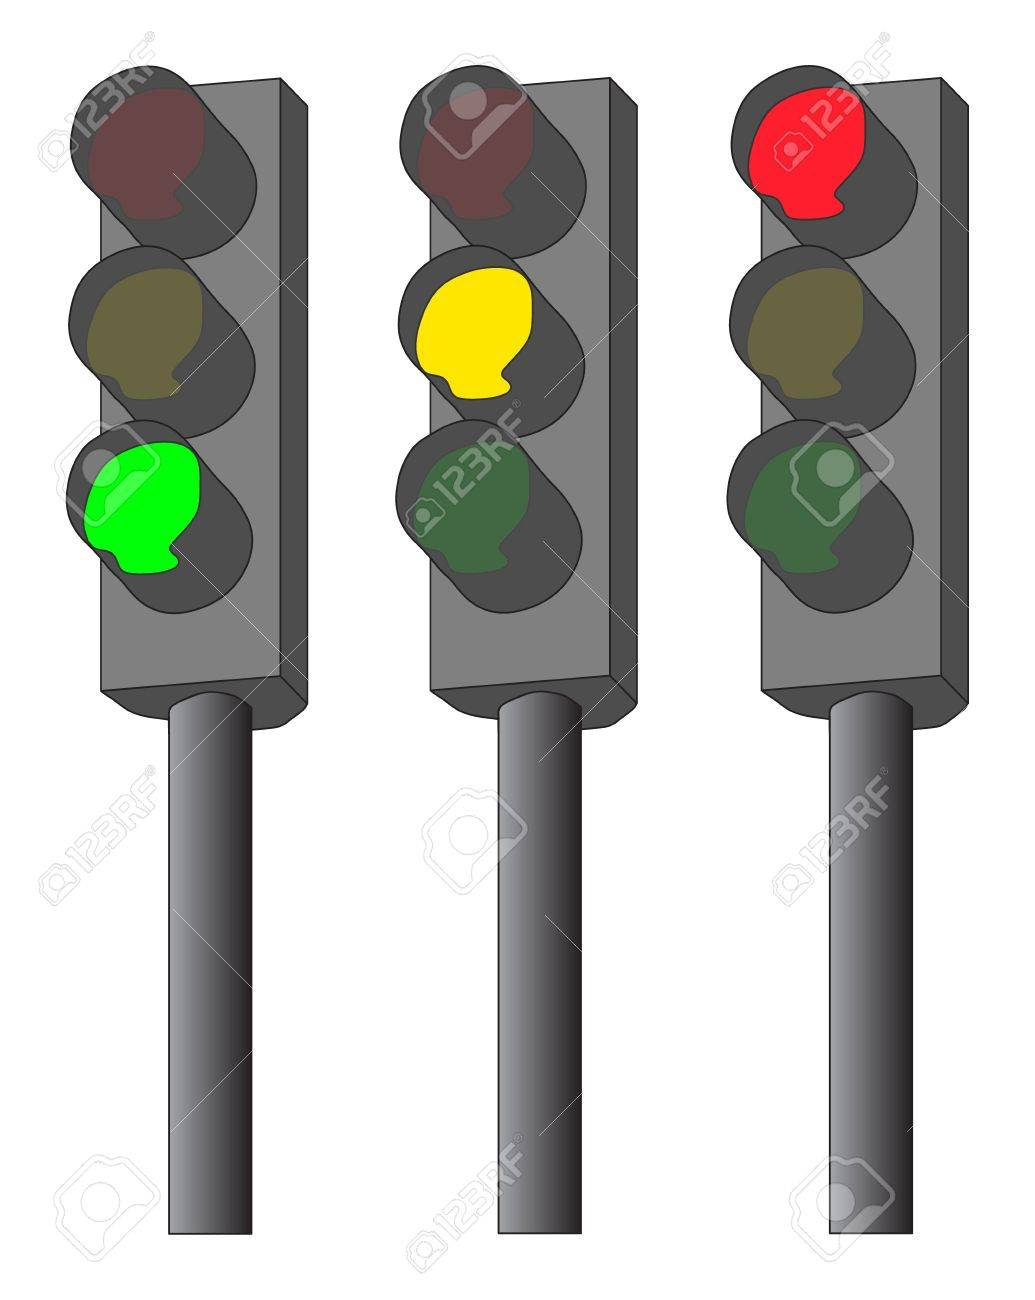 Traffic lights illustration  green, yellow and red Stock Vector - 14487274